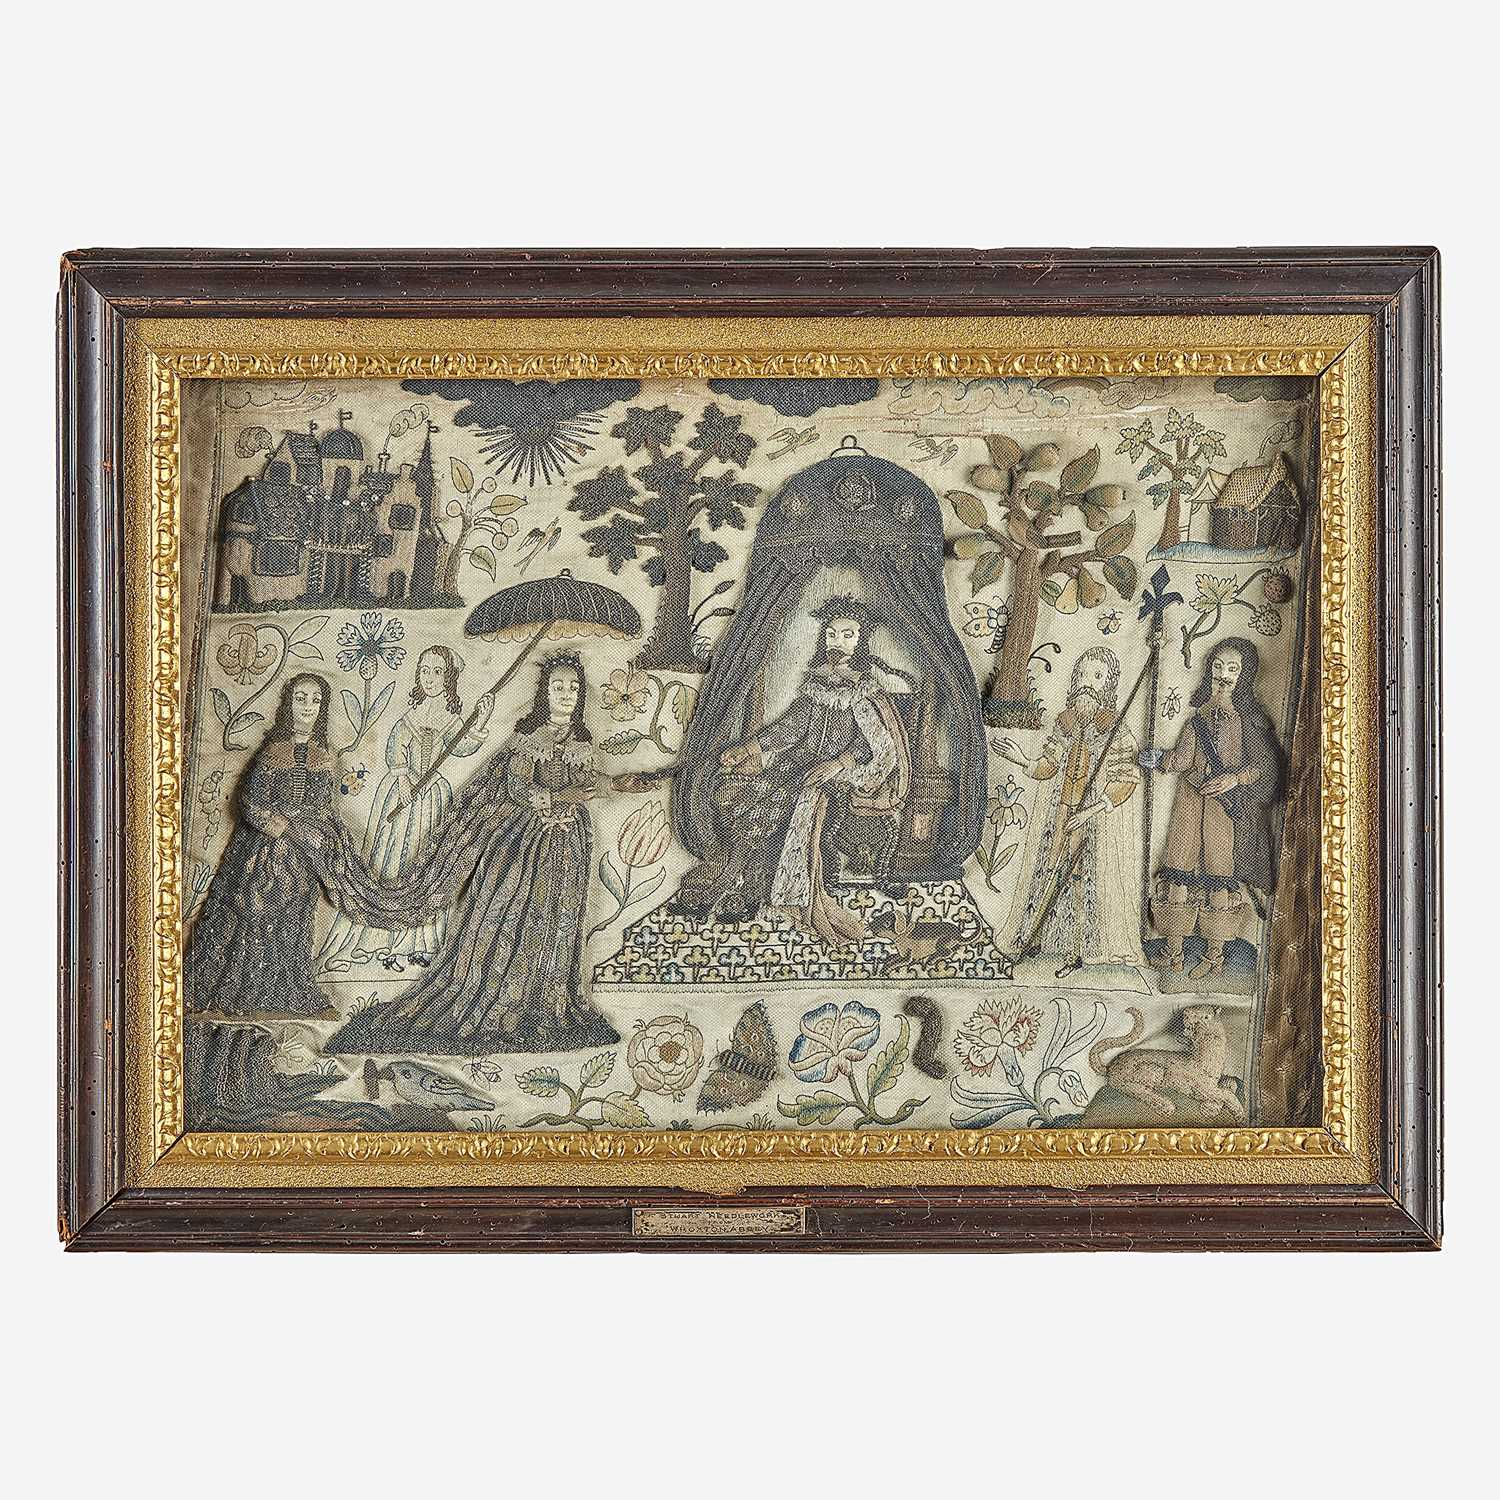 Lot 21 - An embroidered stumpwork panel of King Solomon receiving The Queen of Sheba